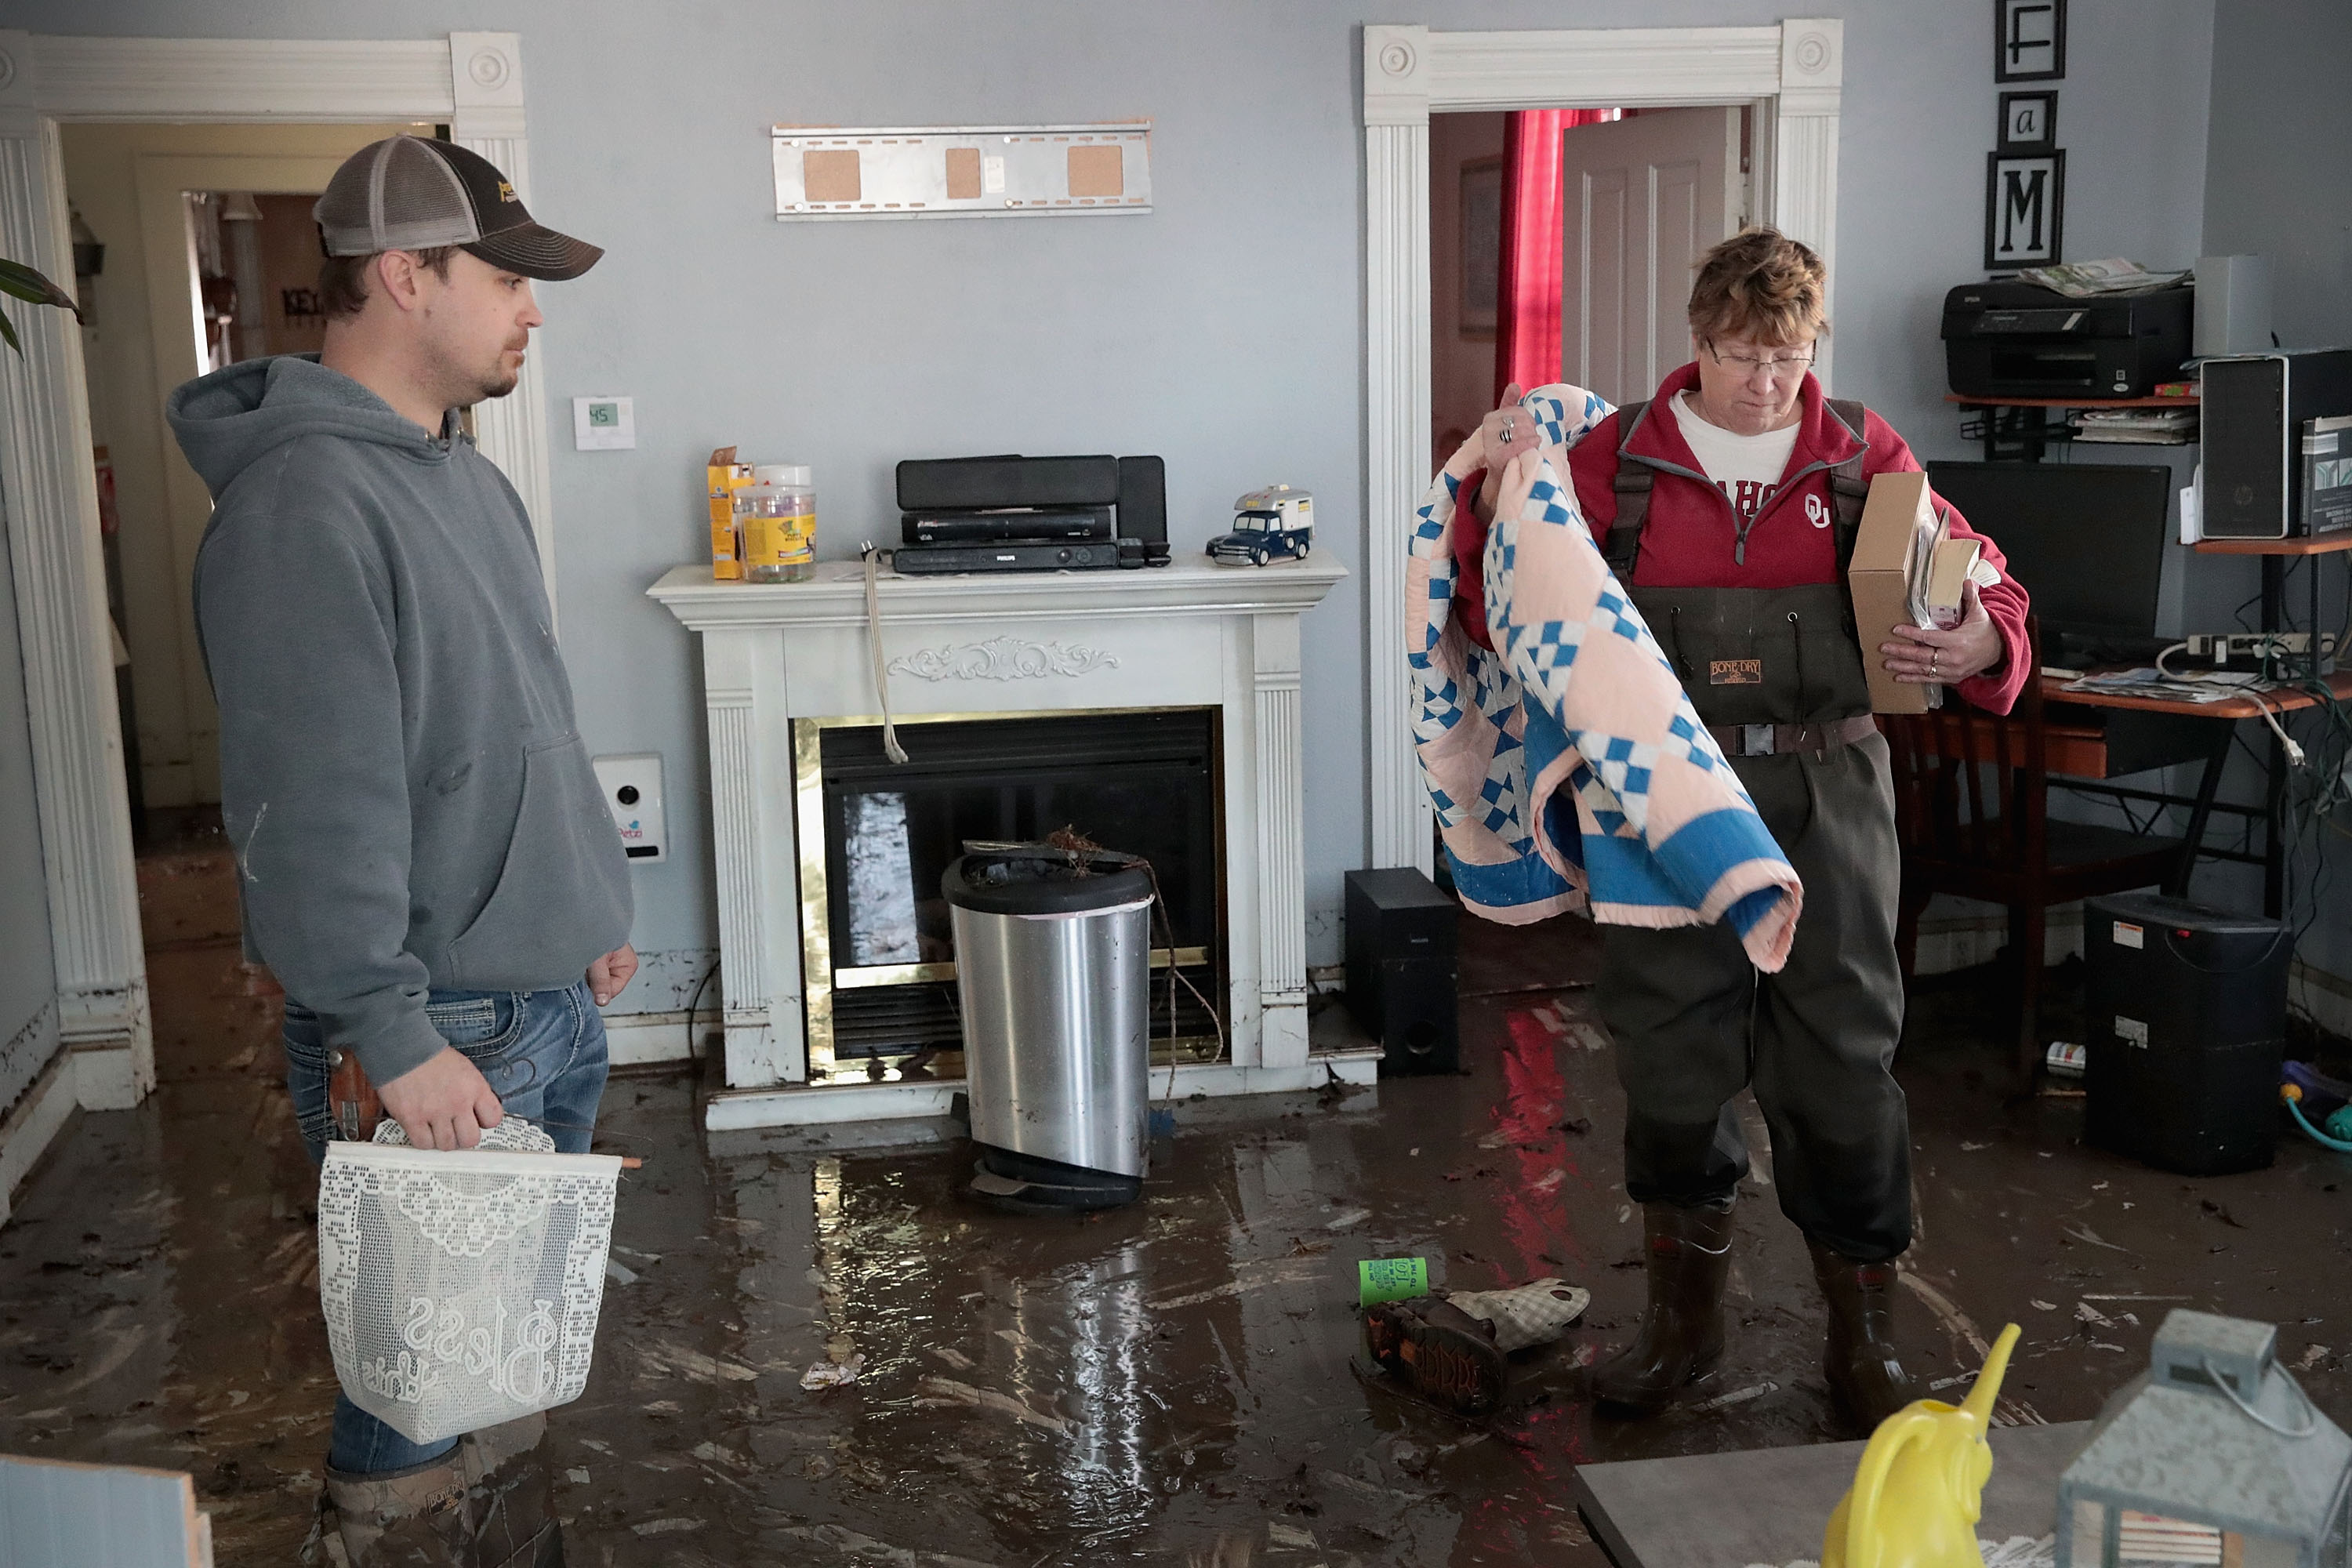 """HAMBURG, IOWA - MARCH 20:  Joey Peeler (L) helps his friend Kathy Drummond remove items from her flooded home on March 20, 2019 in Hamburg, Iowa. Although flood water in the town has started to recede many homes and businesses remain surrounded by water. Several Midwest states are battling some of the worst flooding they have experienced in decades as rain and snow melt from the recent """"bomb cyclone"""" has inundated rivers and streams. At least three deaths have been linked to the flooding.  (Photo by Scott Olson/Getty Images)"""